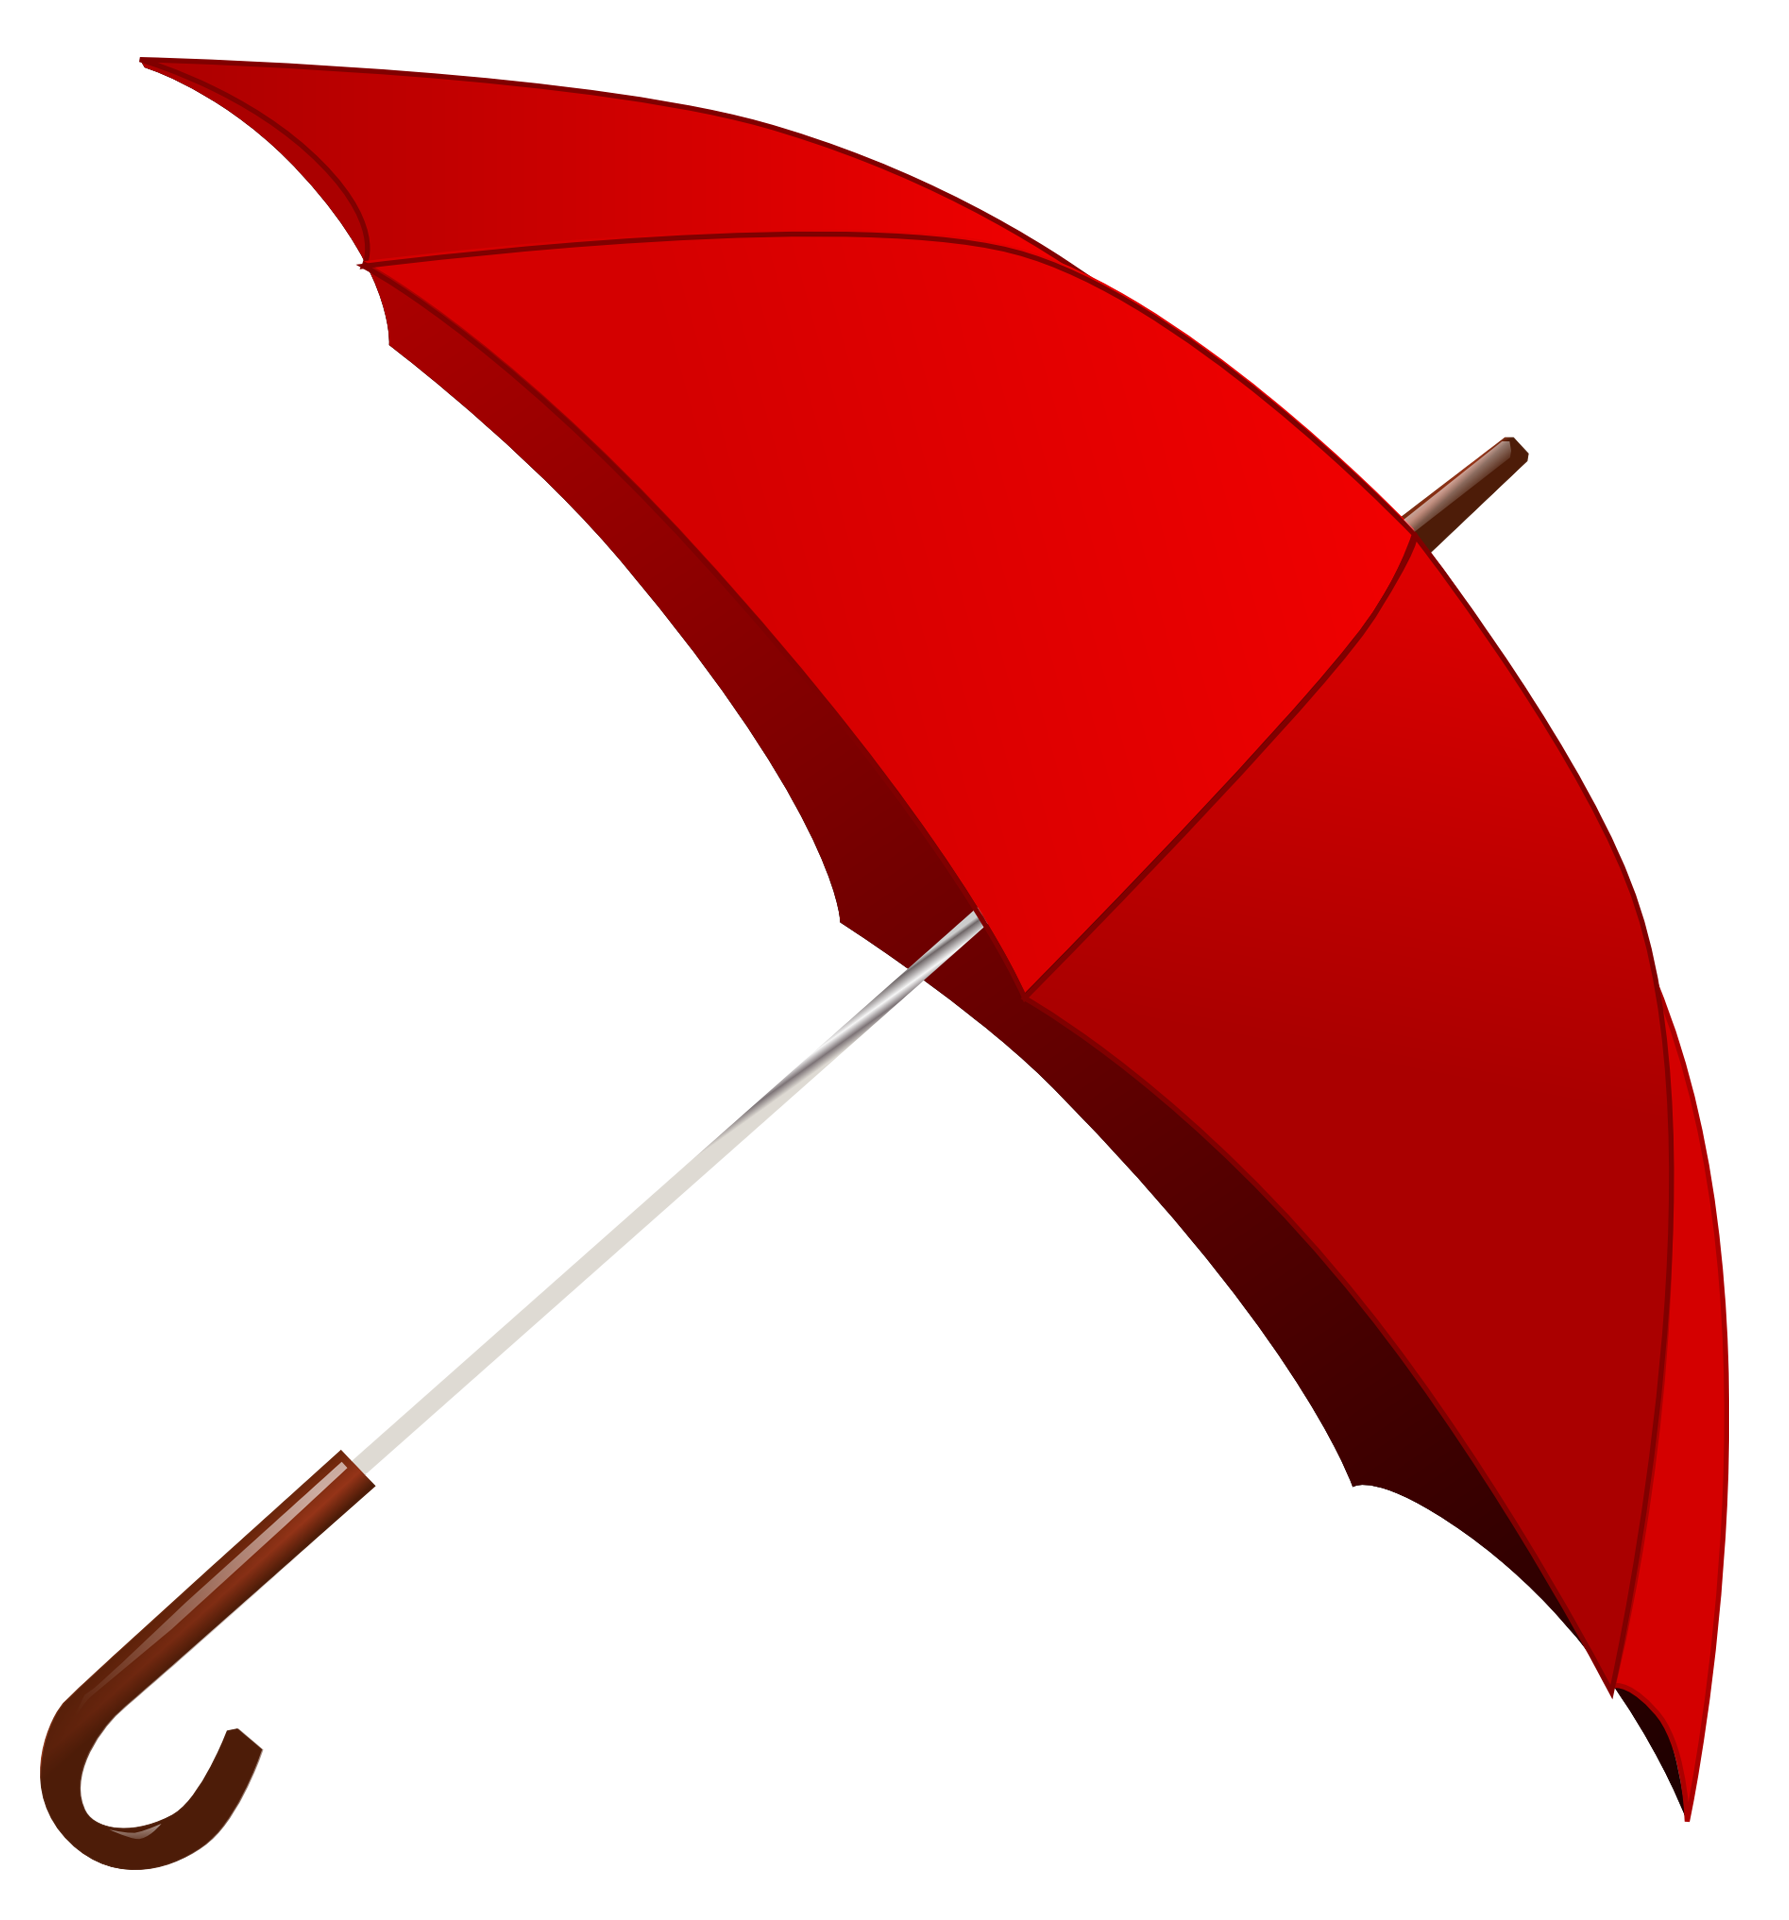 Umbrella PNG Transparent Image - Umbrella PNG